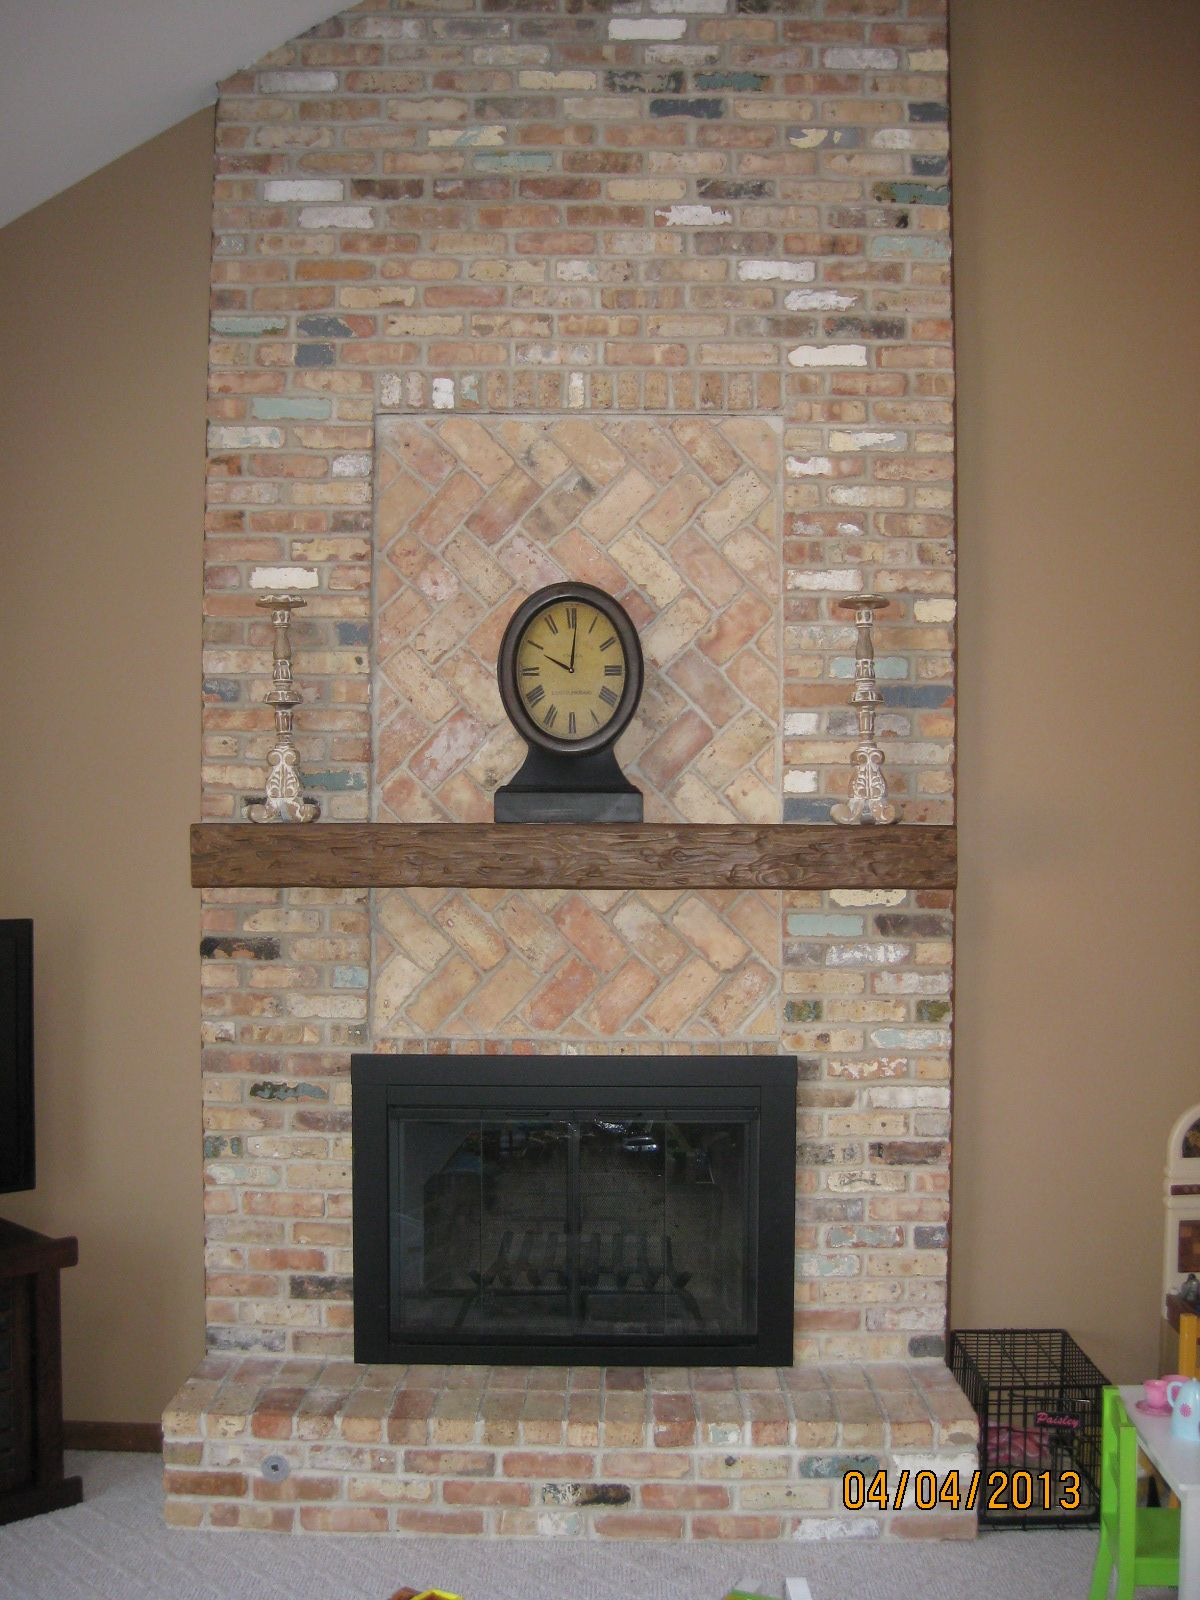 Diy mantel shelf for brick fireplace google search dyi for Diy fireplace remodel ideas